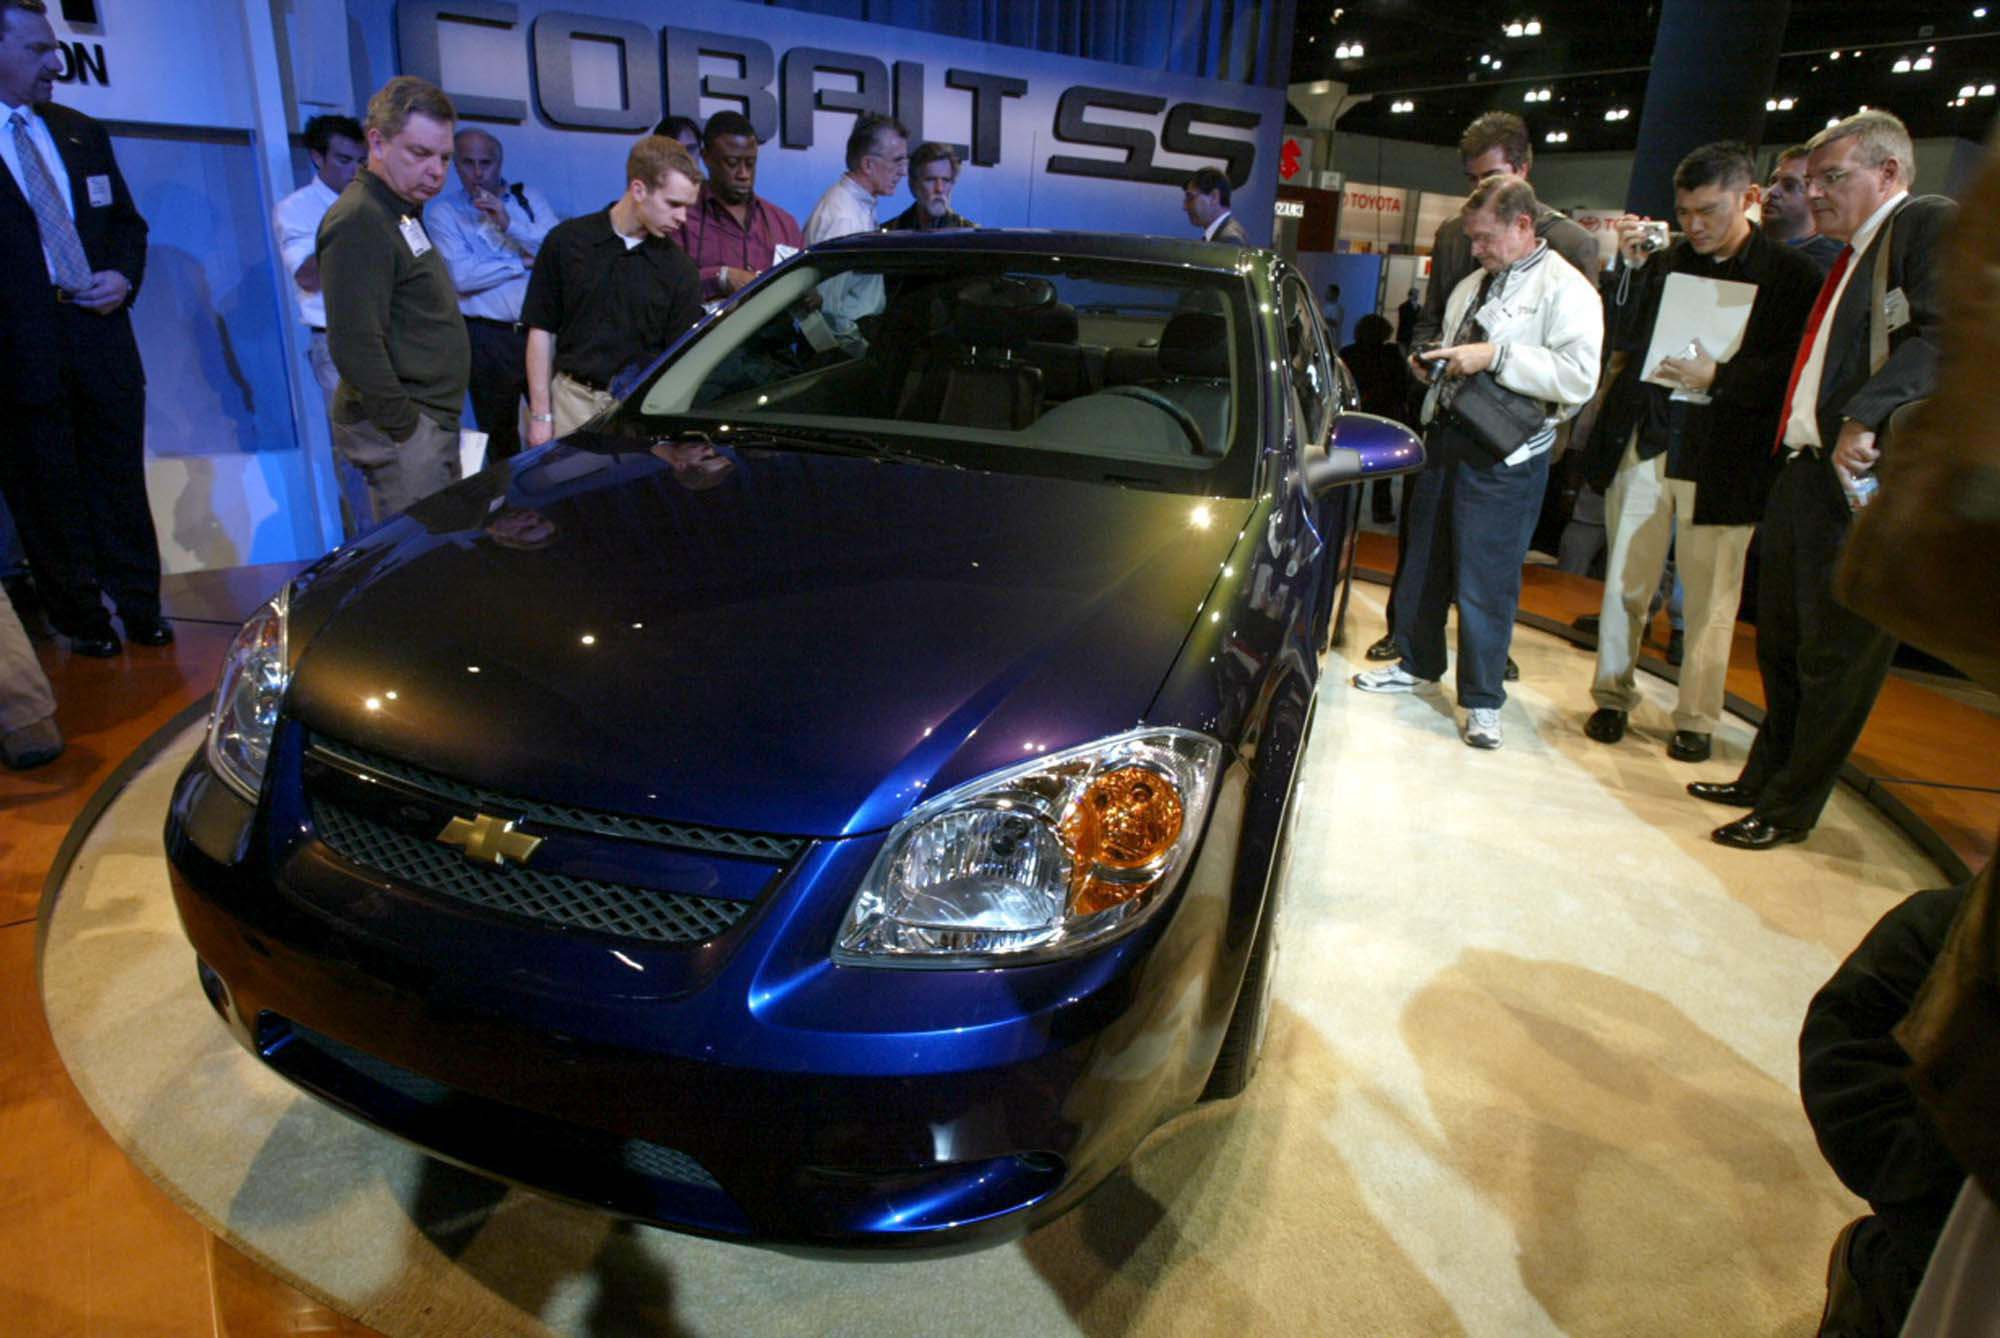 A new 2005 chevrolet cobalt is displayed at the los angeles auto show in 2003